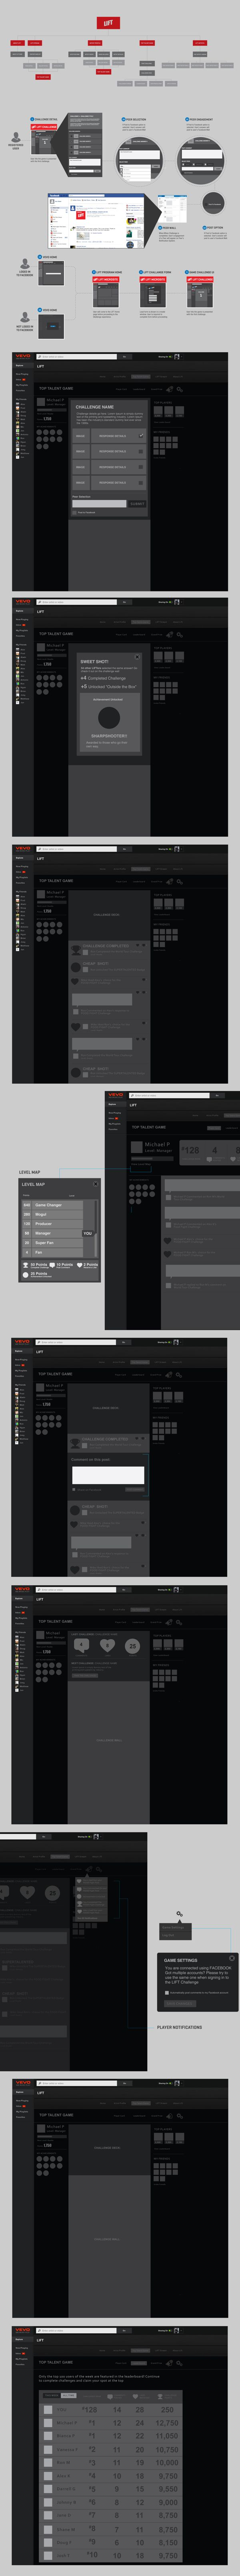 Social Content Curation Challenge by- Pons Creative Group #Content #UI #UX #Design